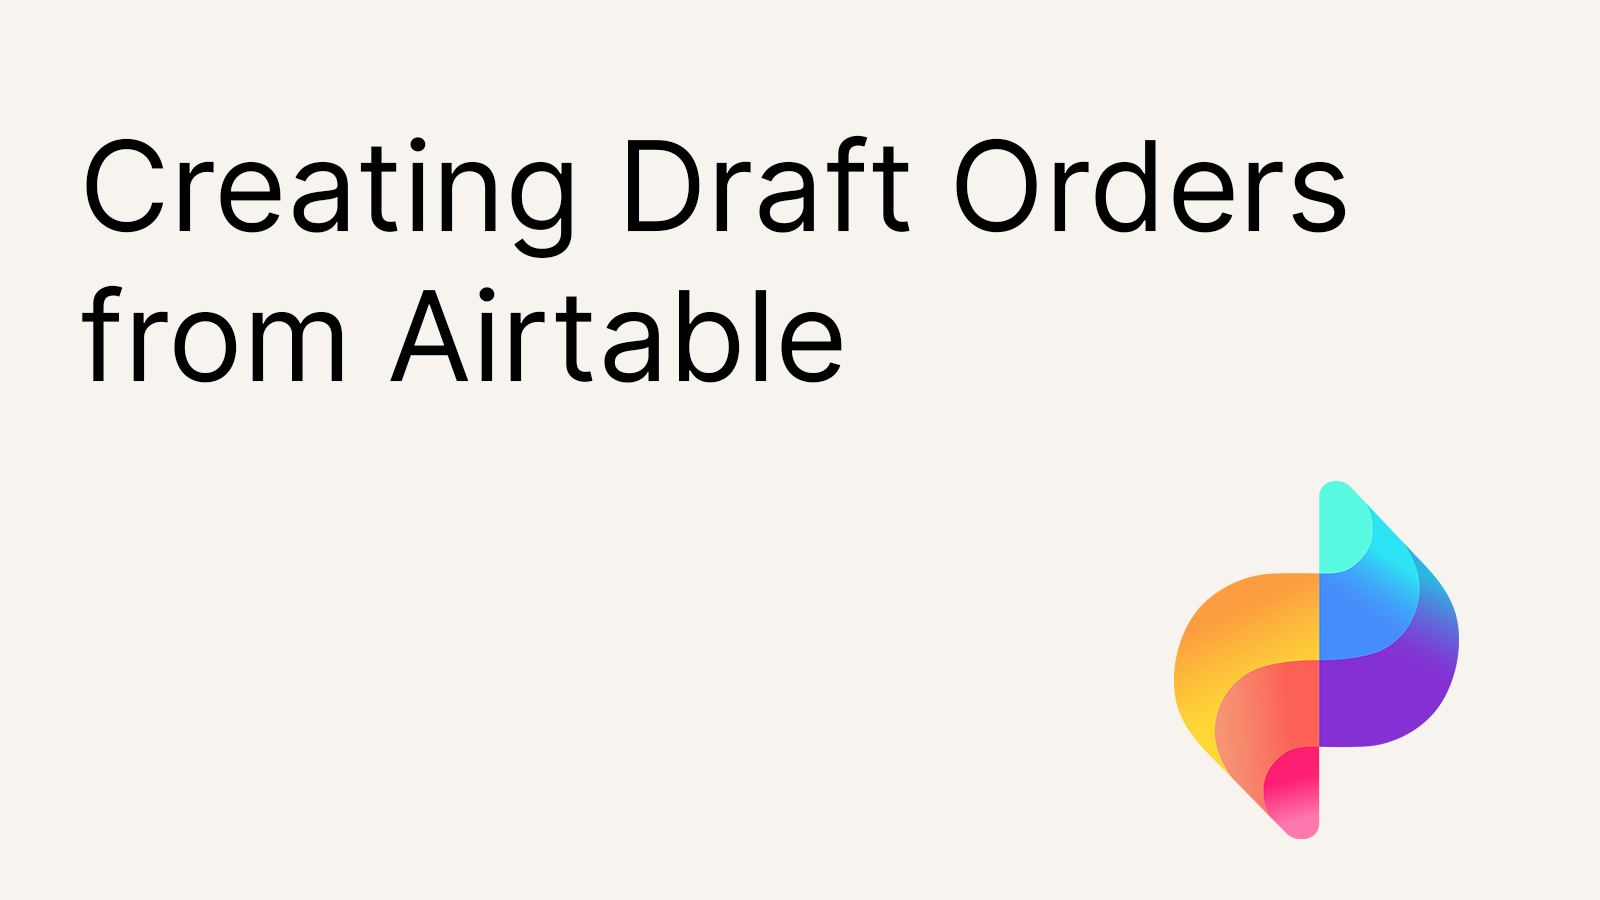 Creating Draft Orders from Shopify